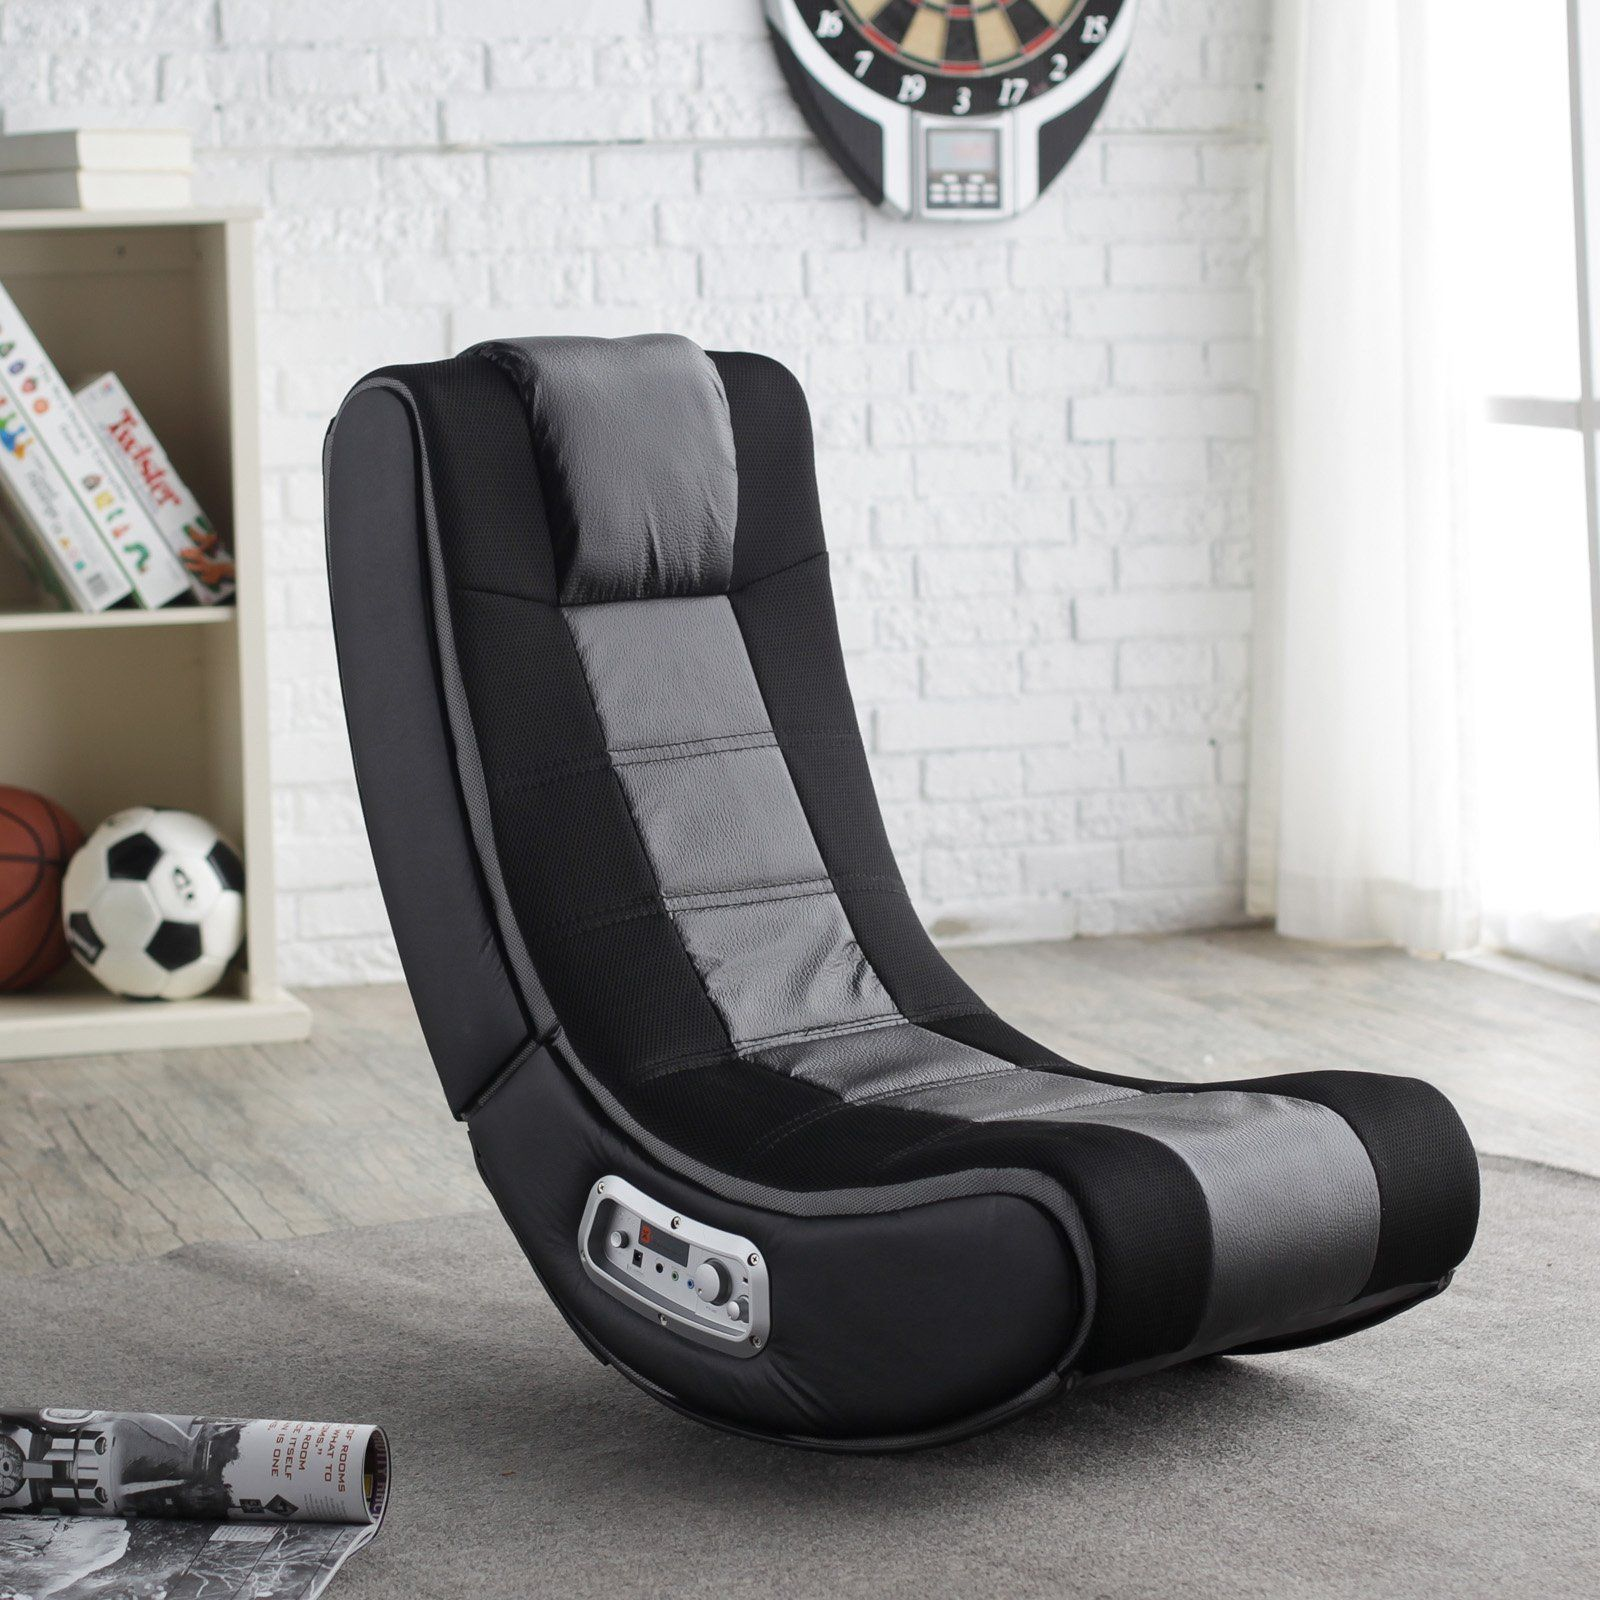 Awesome Chair A Must Get For The Room Stoelen